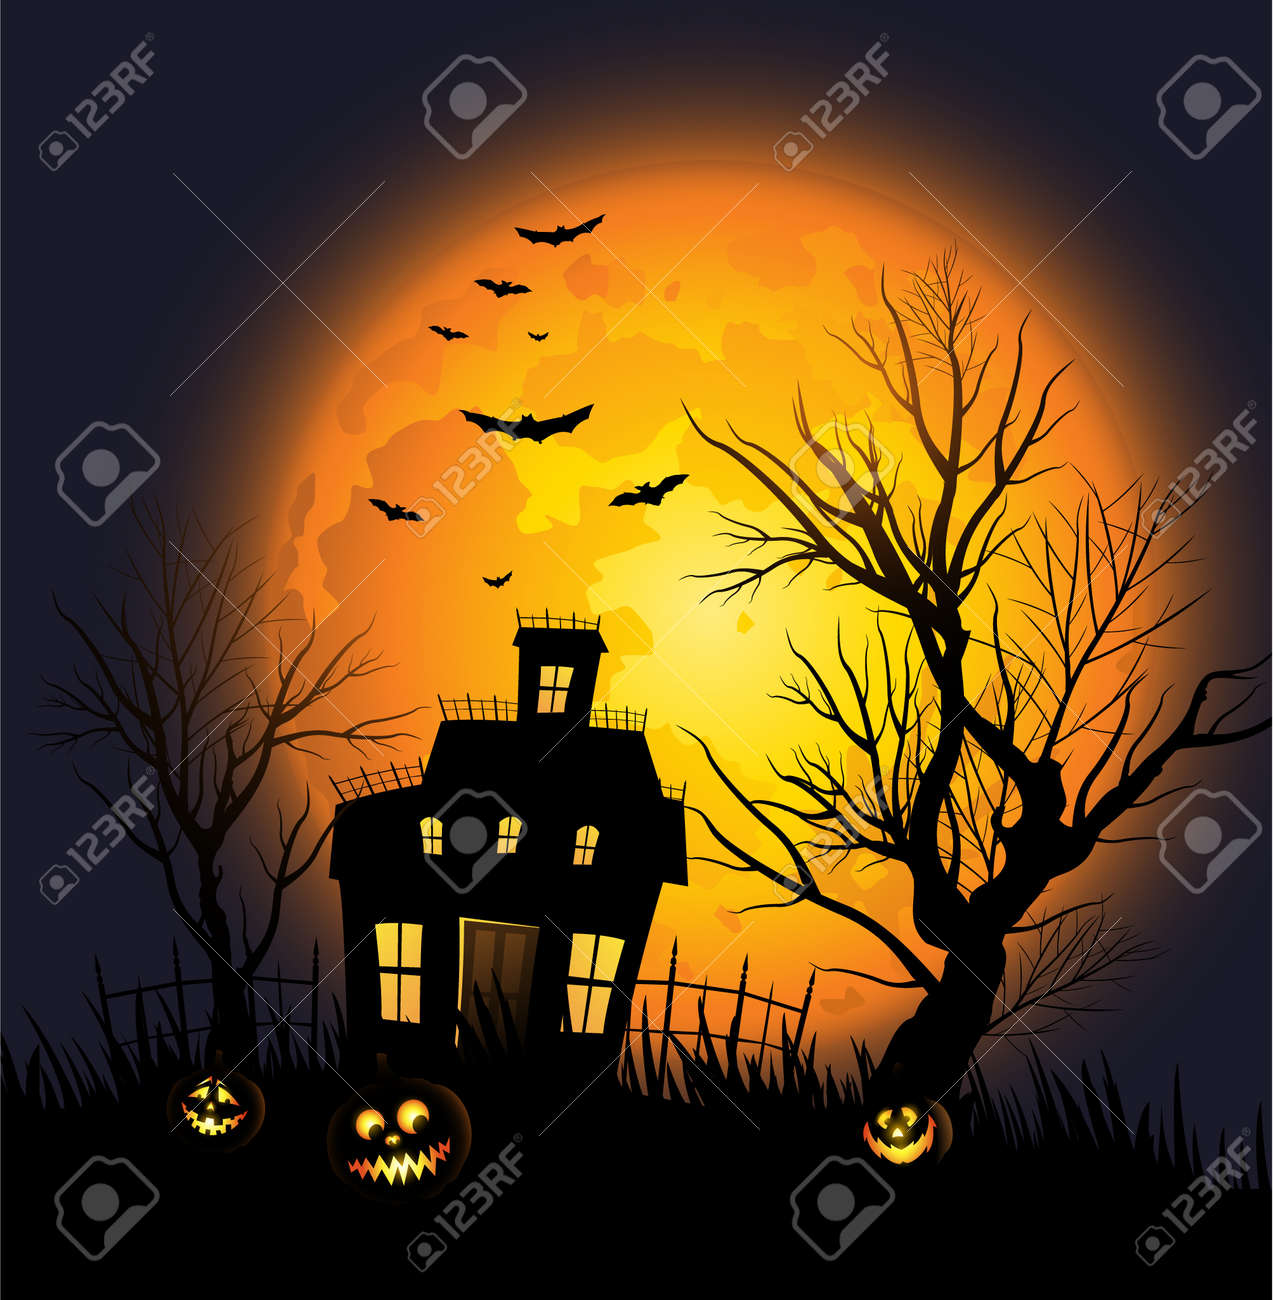 Halloween background with haunted house and creepy tree Stock Vector - 14812059